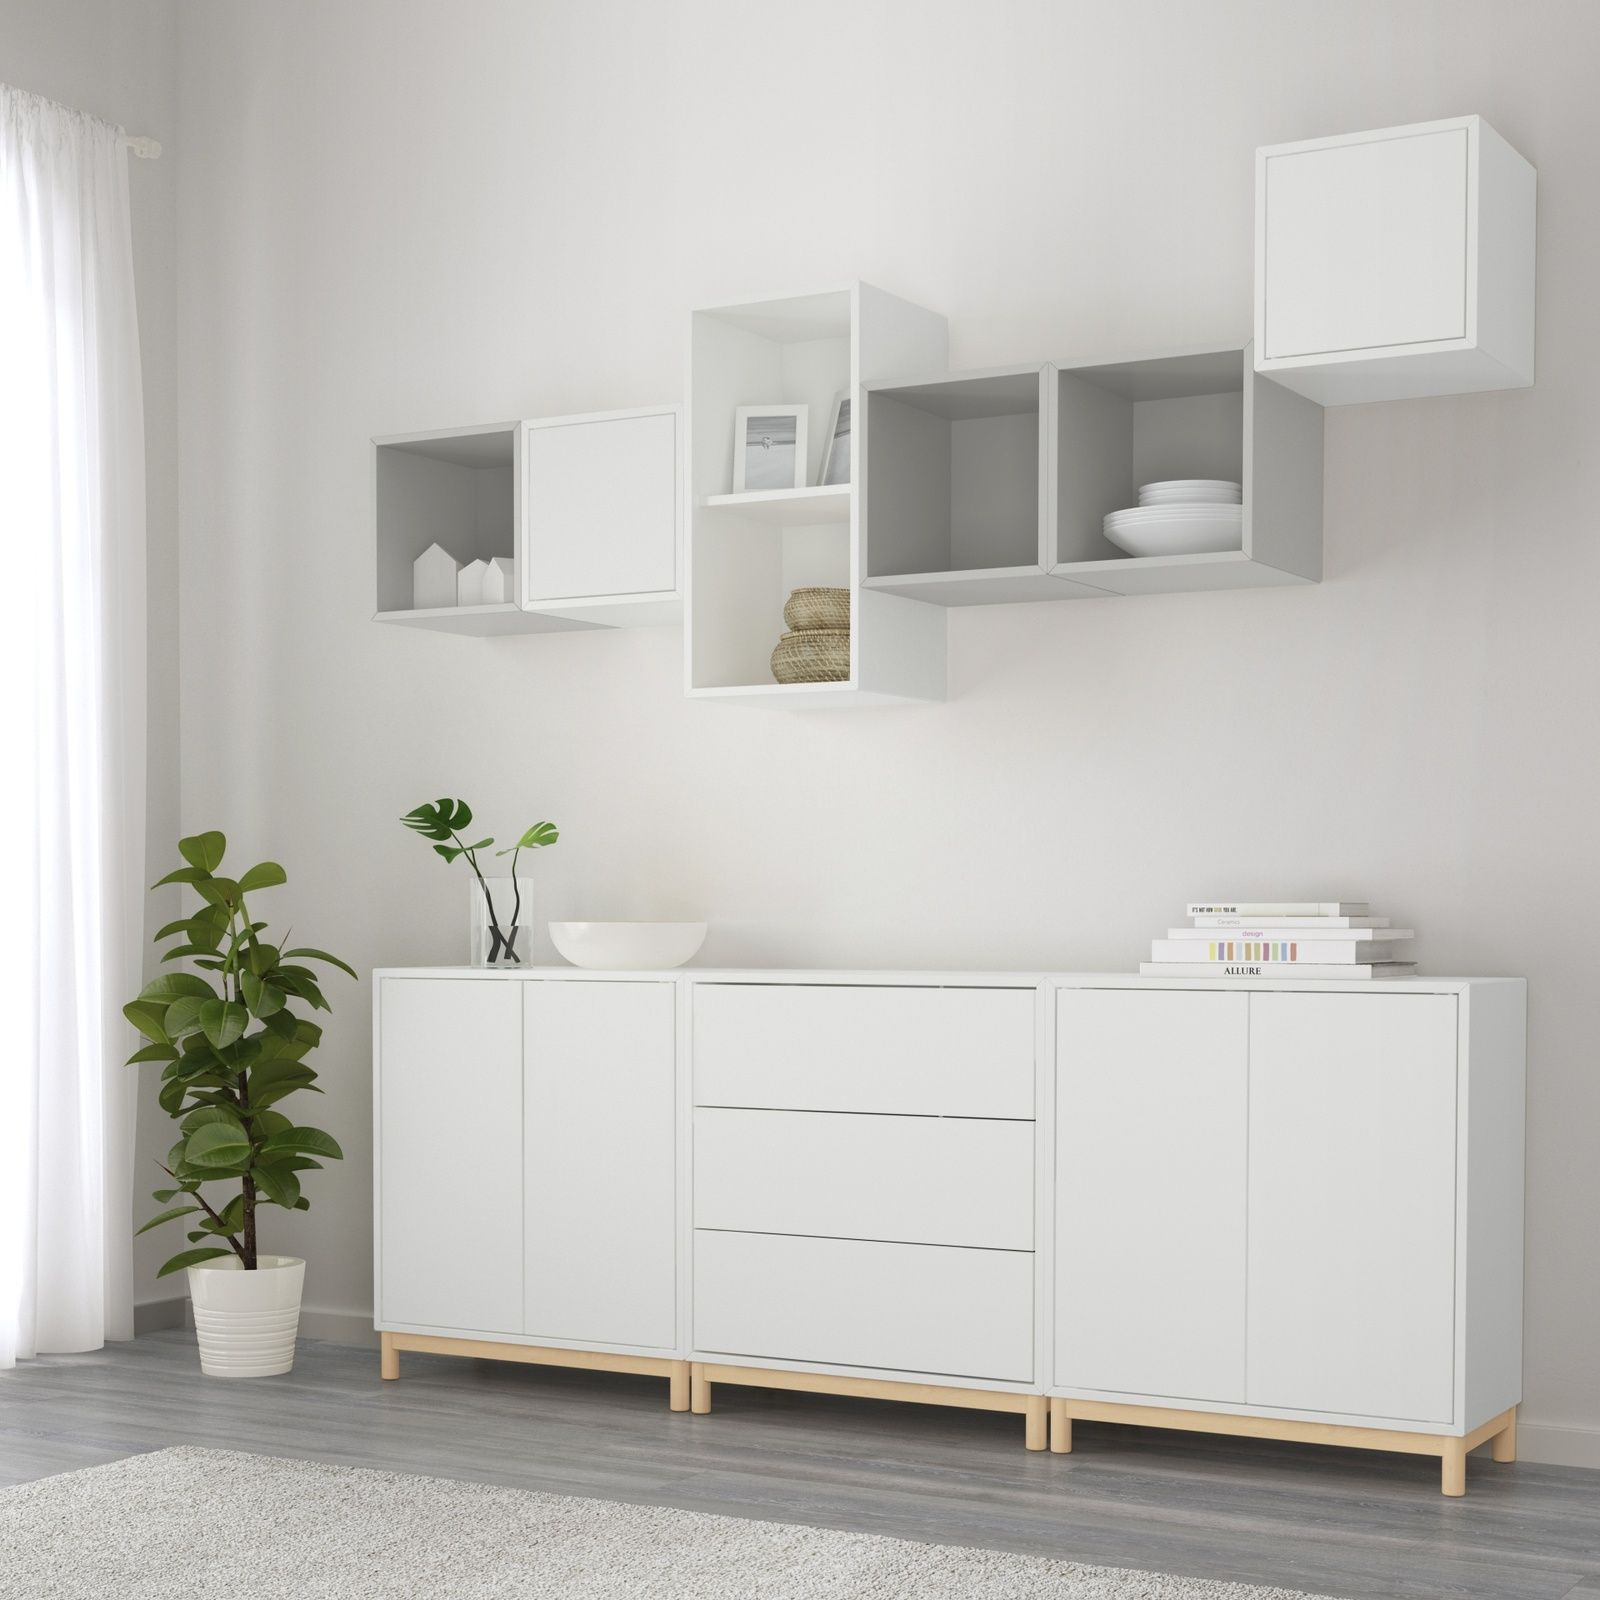 ikea besta catalogue Google Search home one day